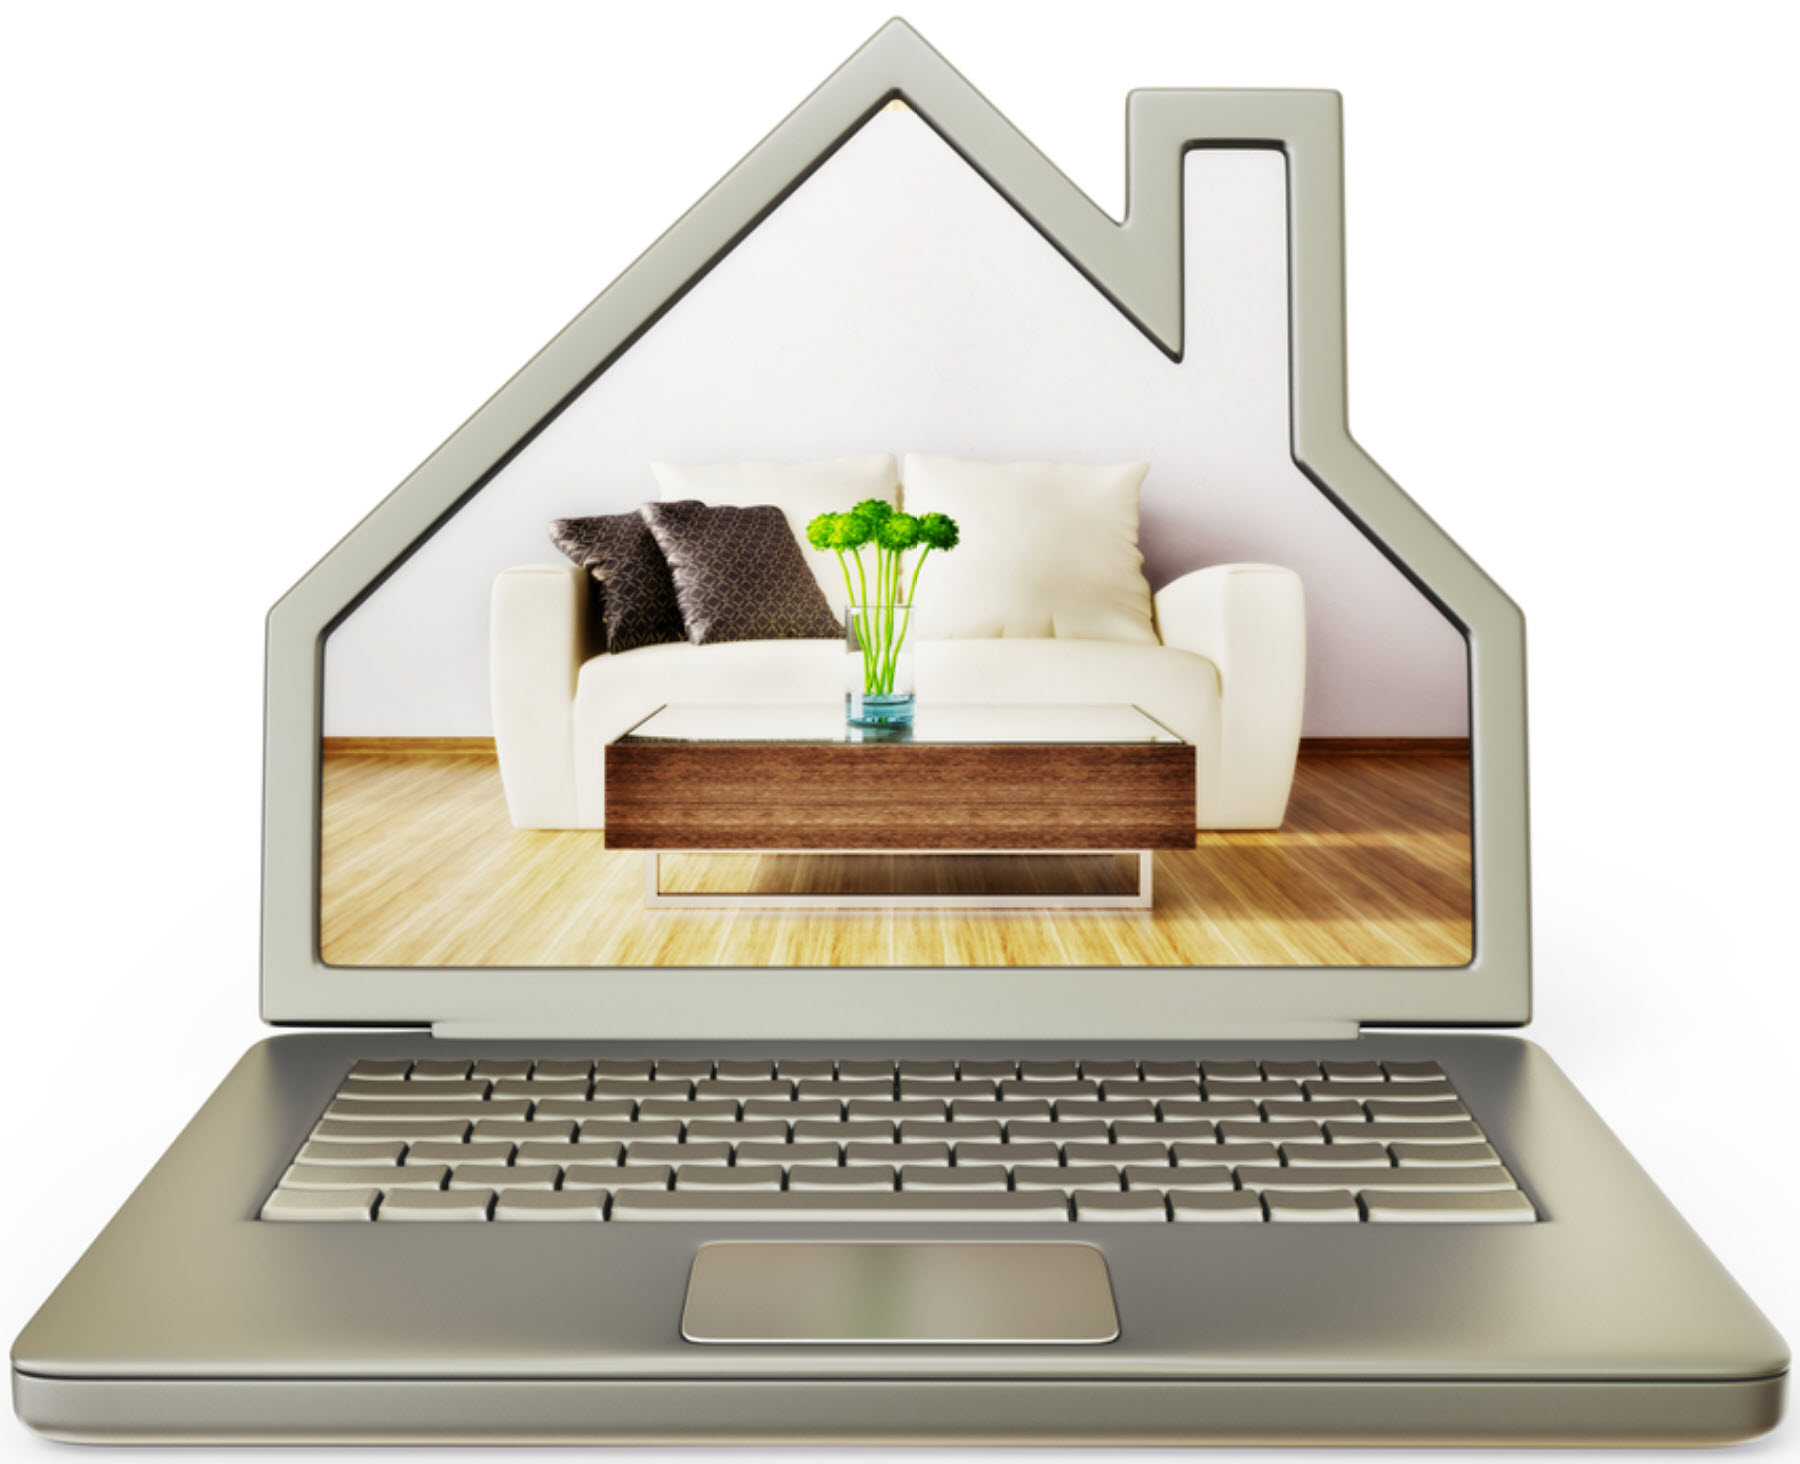 scottsdale home video tour on a laptop